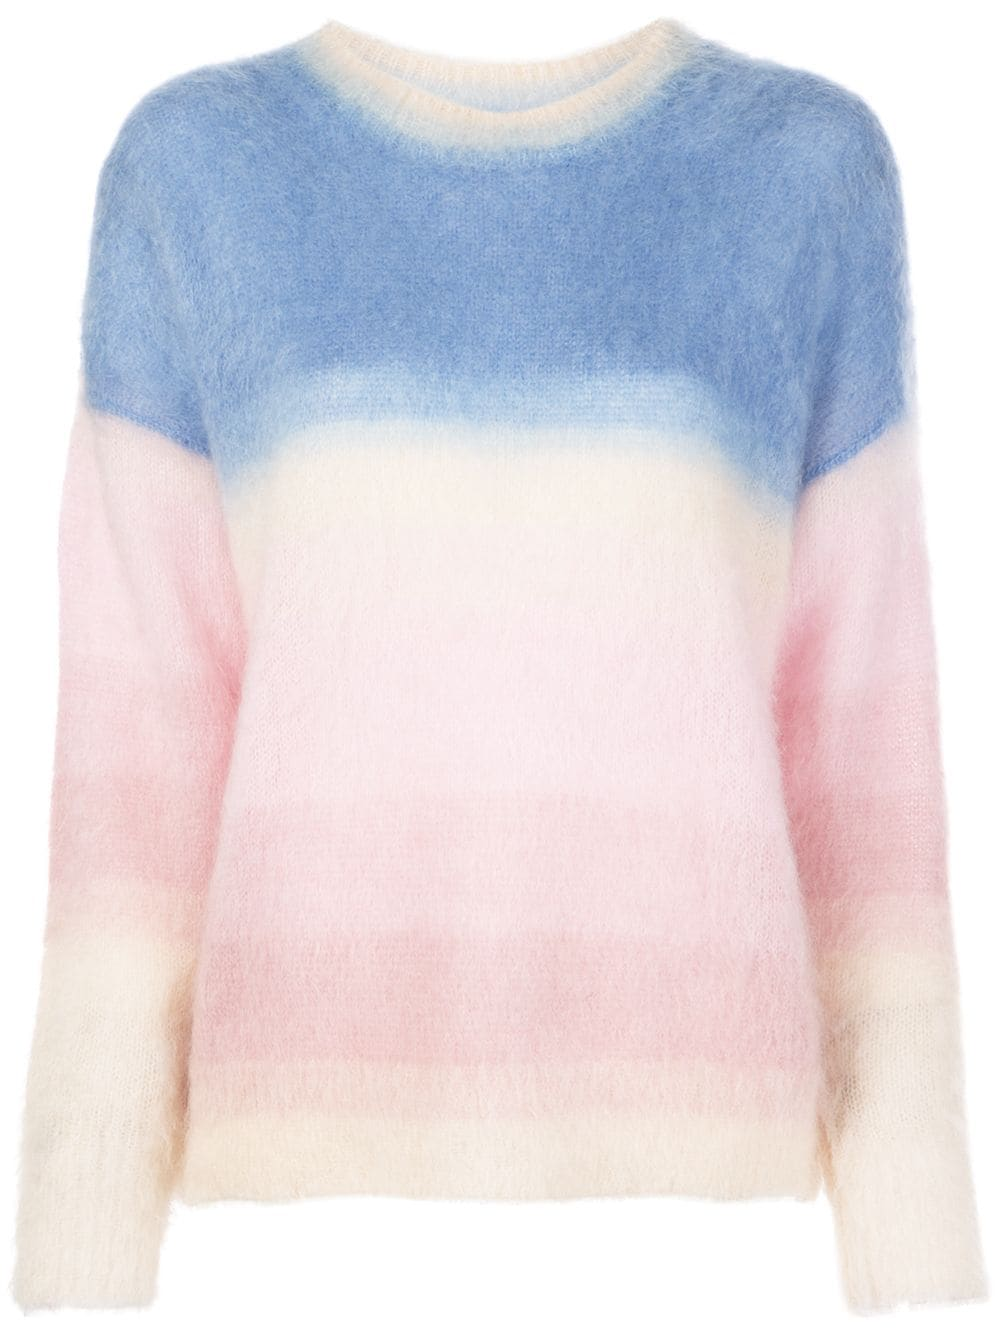 ISABEL MARANT DRUSSELL PULLOVER